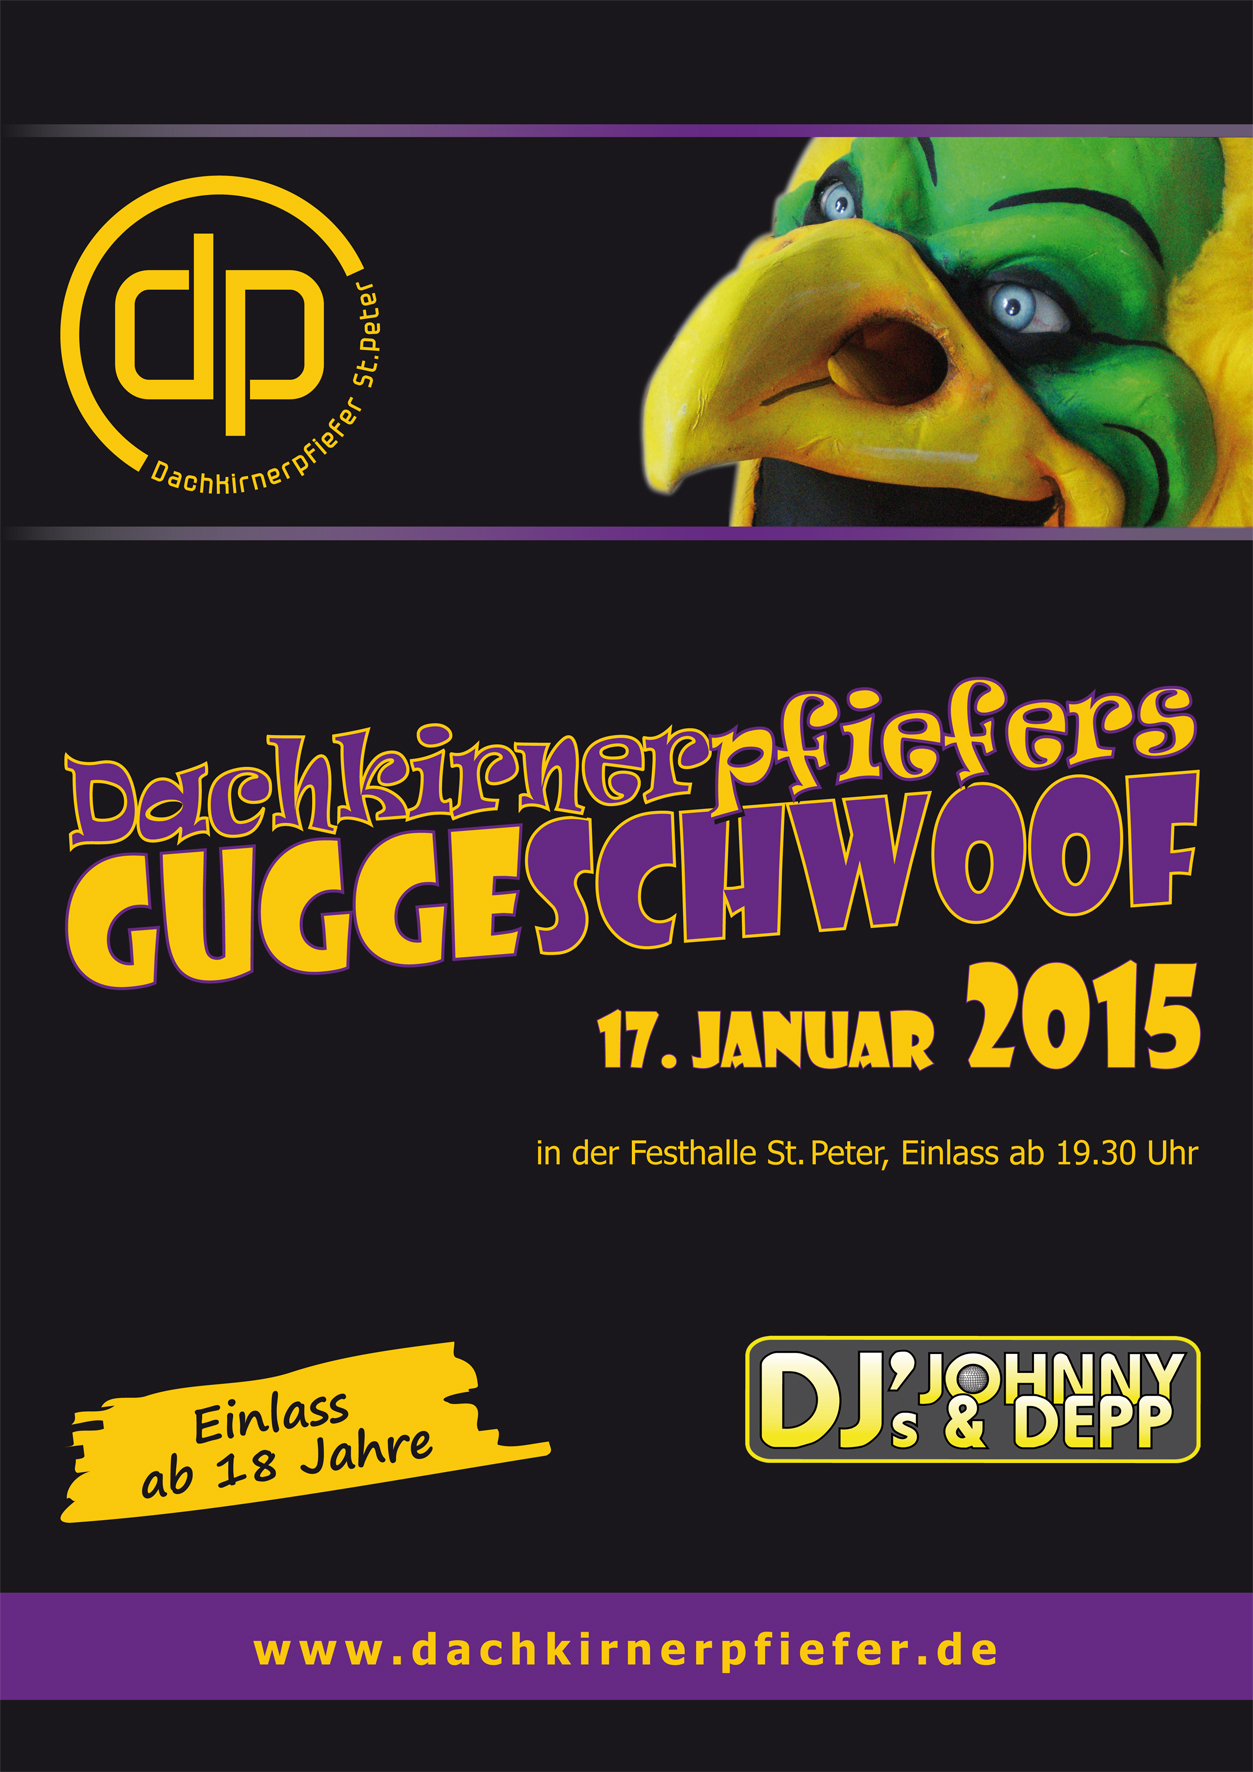 Plakat Guggeschwoof2015